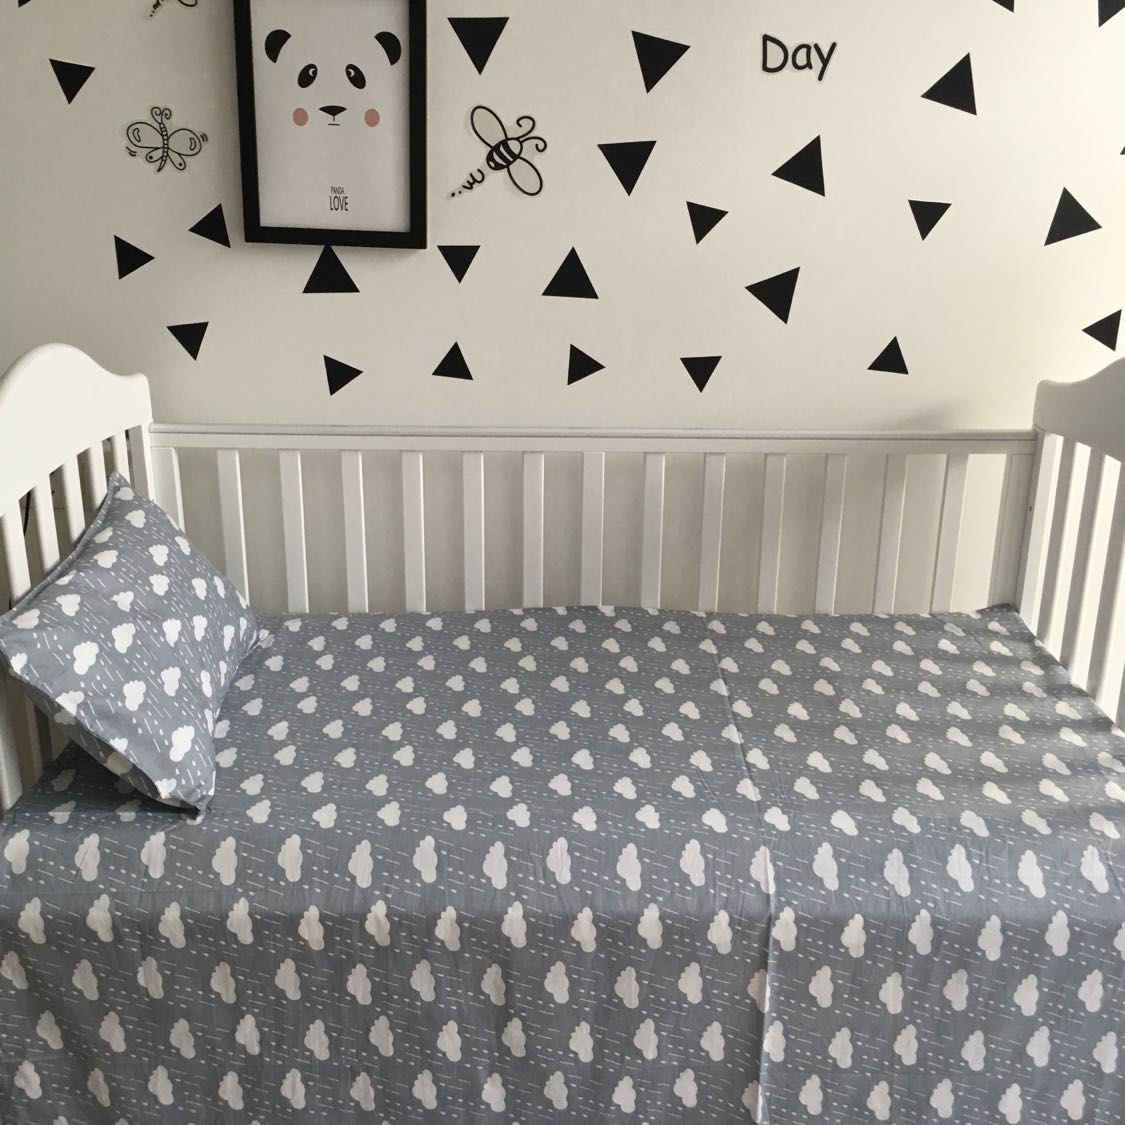 Baby bed sheet pattern - 110 150 Cm Cotton Baby Bed Sheets Printed Fitted Crib Cot Sheet Baby Without Stimulating